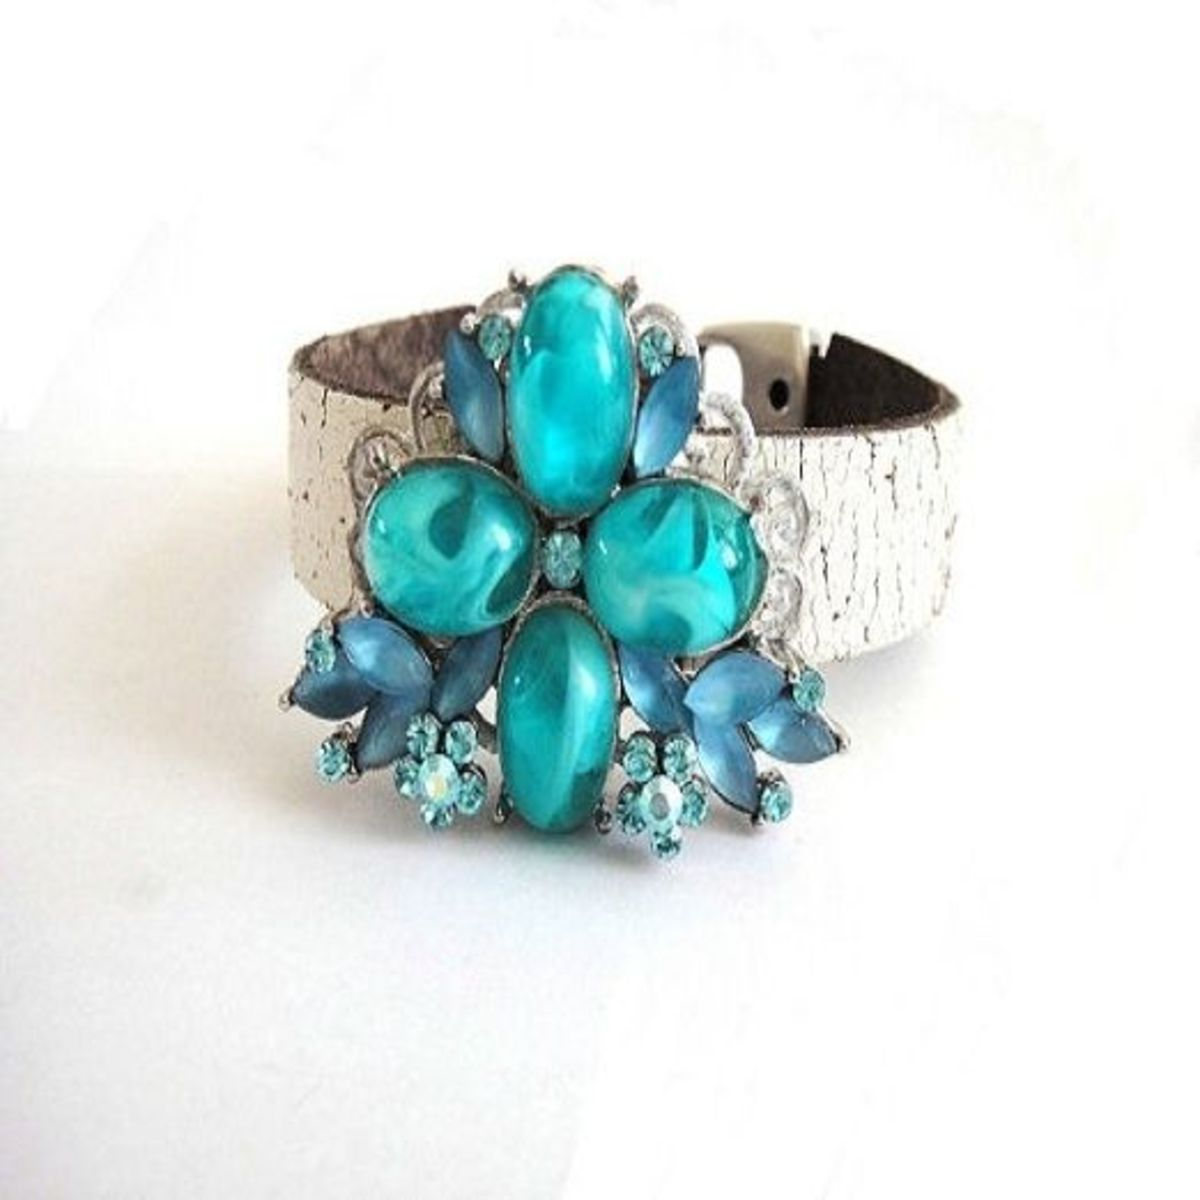 Vintage jewelry repurposed into a cuff bracelet by OOAKJewelz